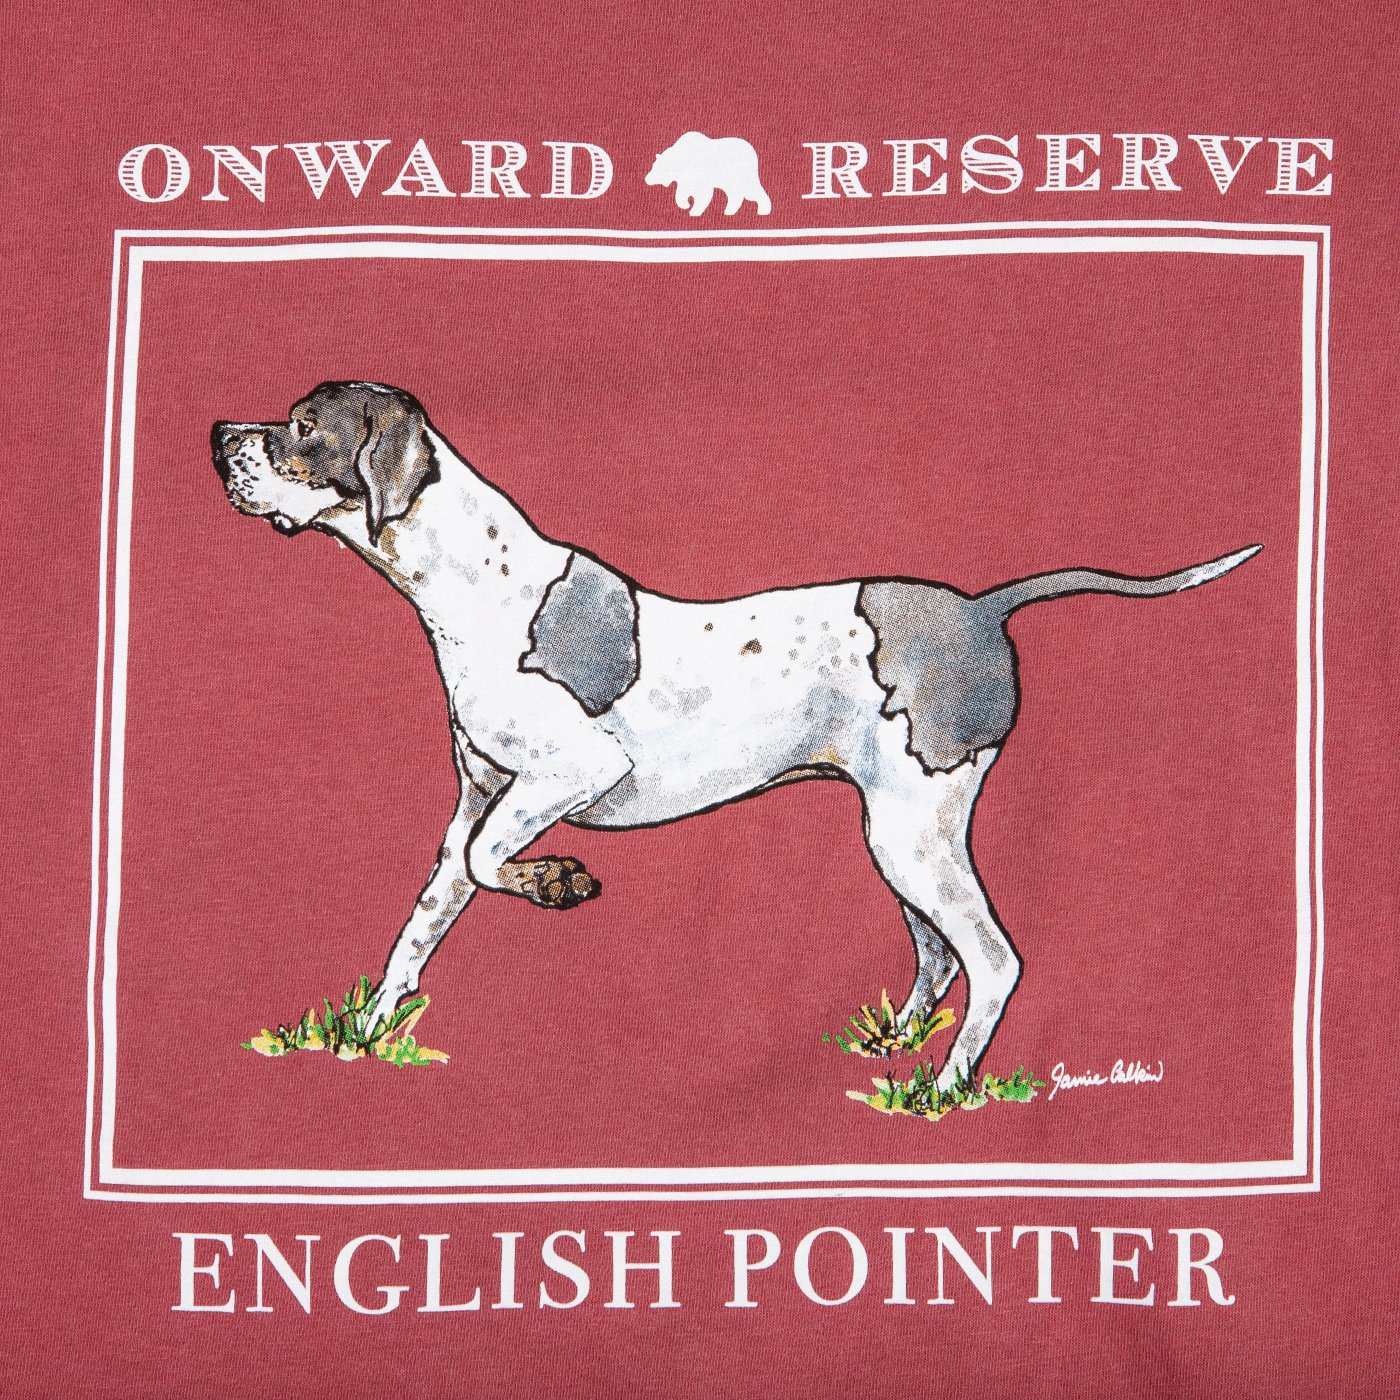 OR-Jamie-Tee-English-Pointer-Rust-Detail.jpg